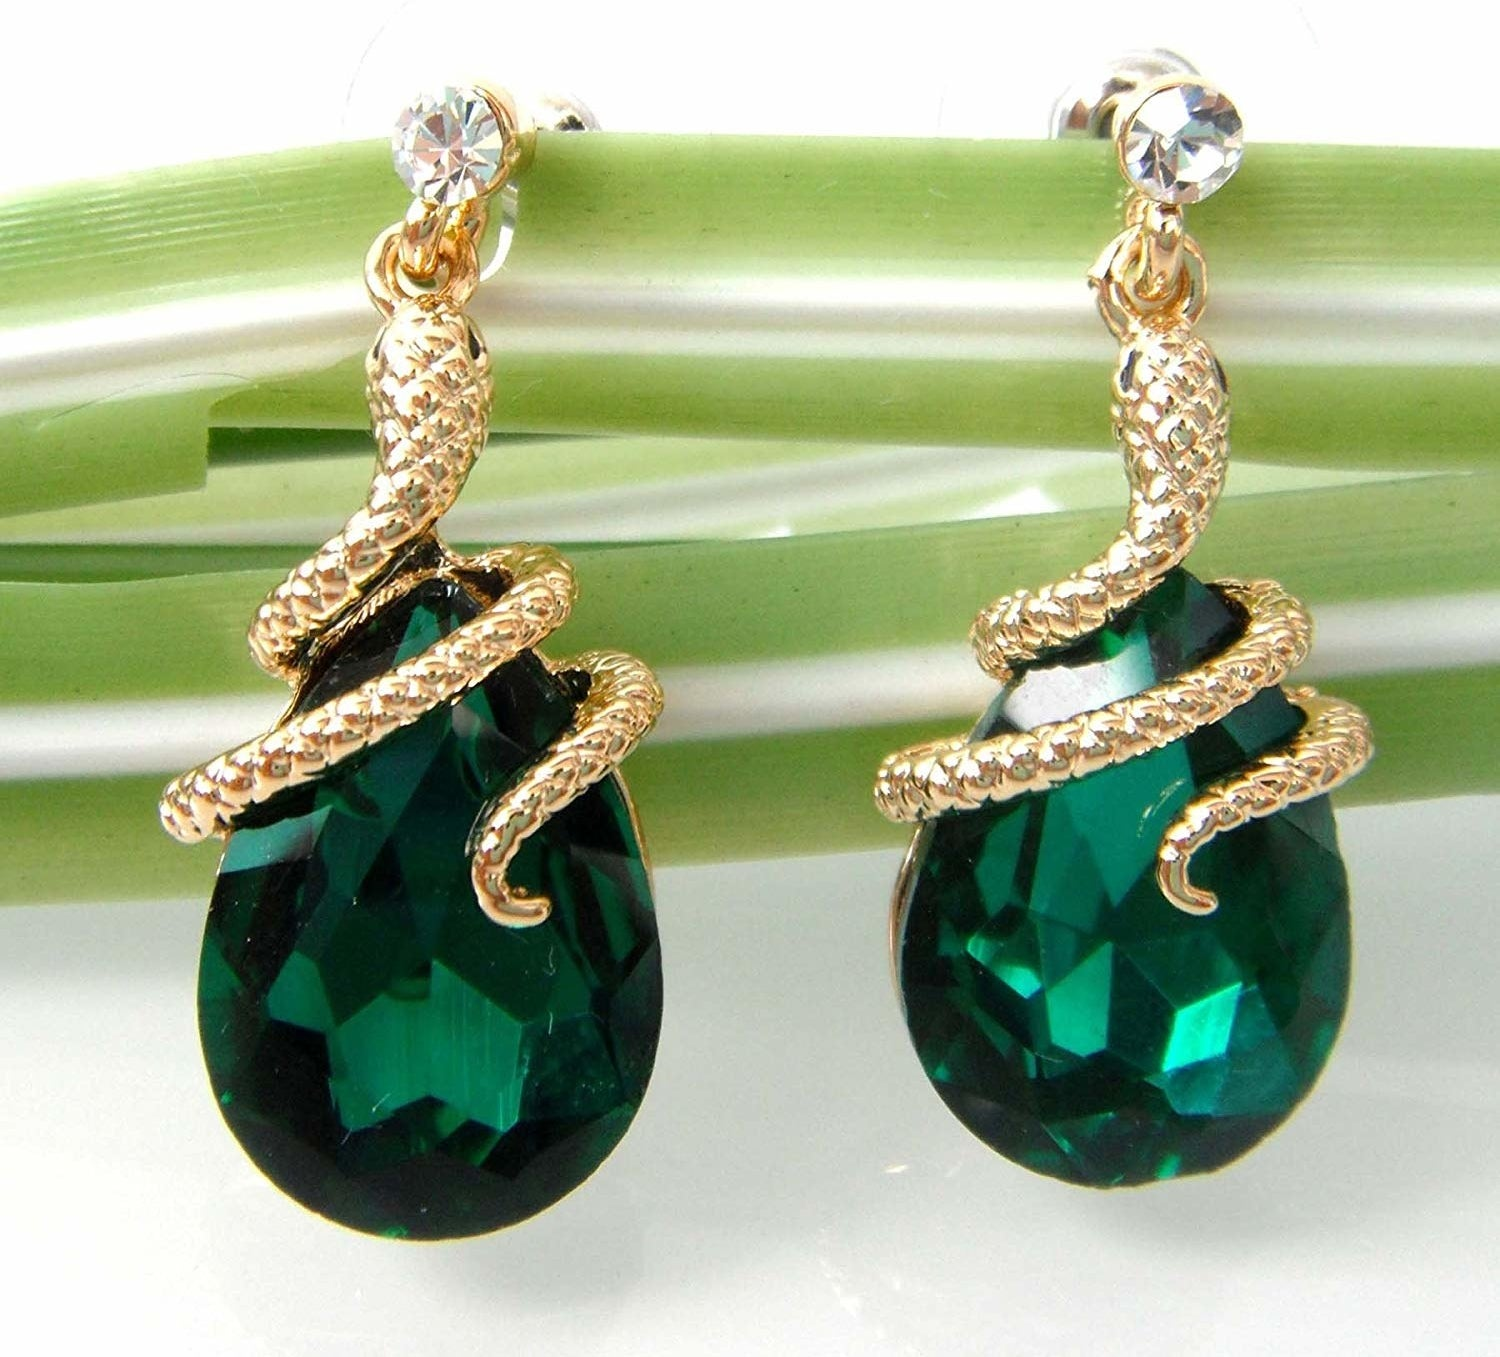 The dangle earrings with teardrop green stones and snakes wrapped around the top